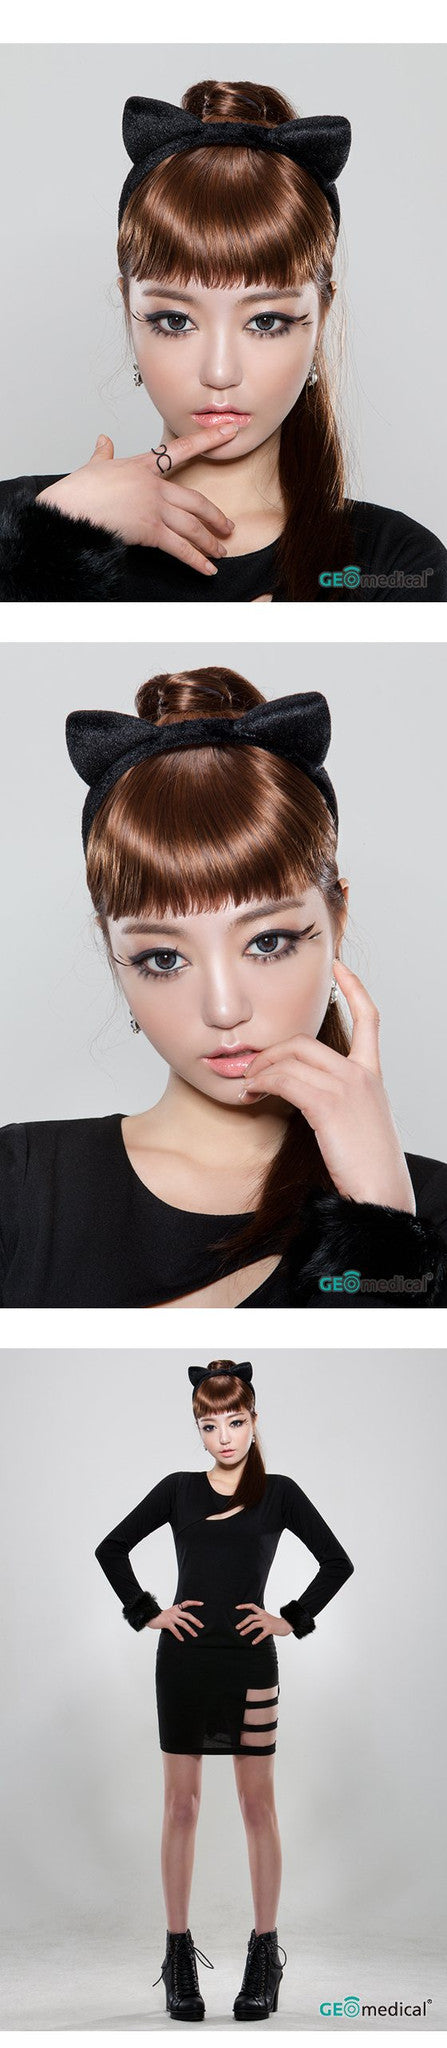 GEOLICA® HoliCat™ Sexy Cat Gray Coloured Contact Lenses | Singapore Authorised Dealer | FREE Worldwide Shipping | Price Match Guarantee